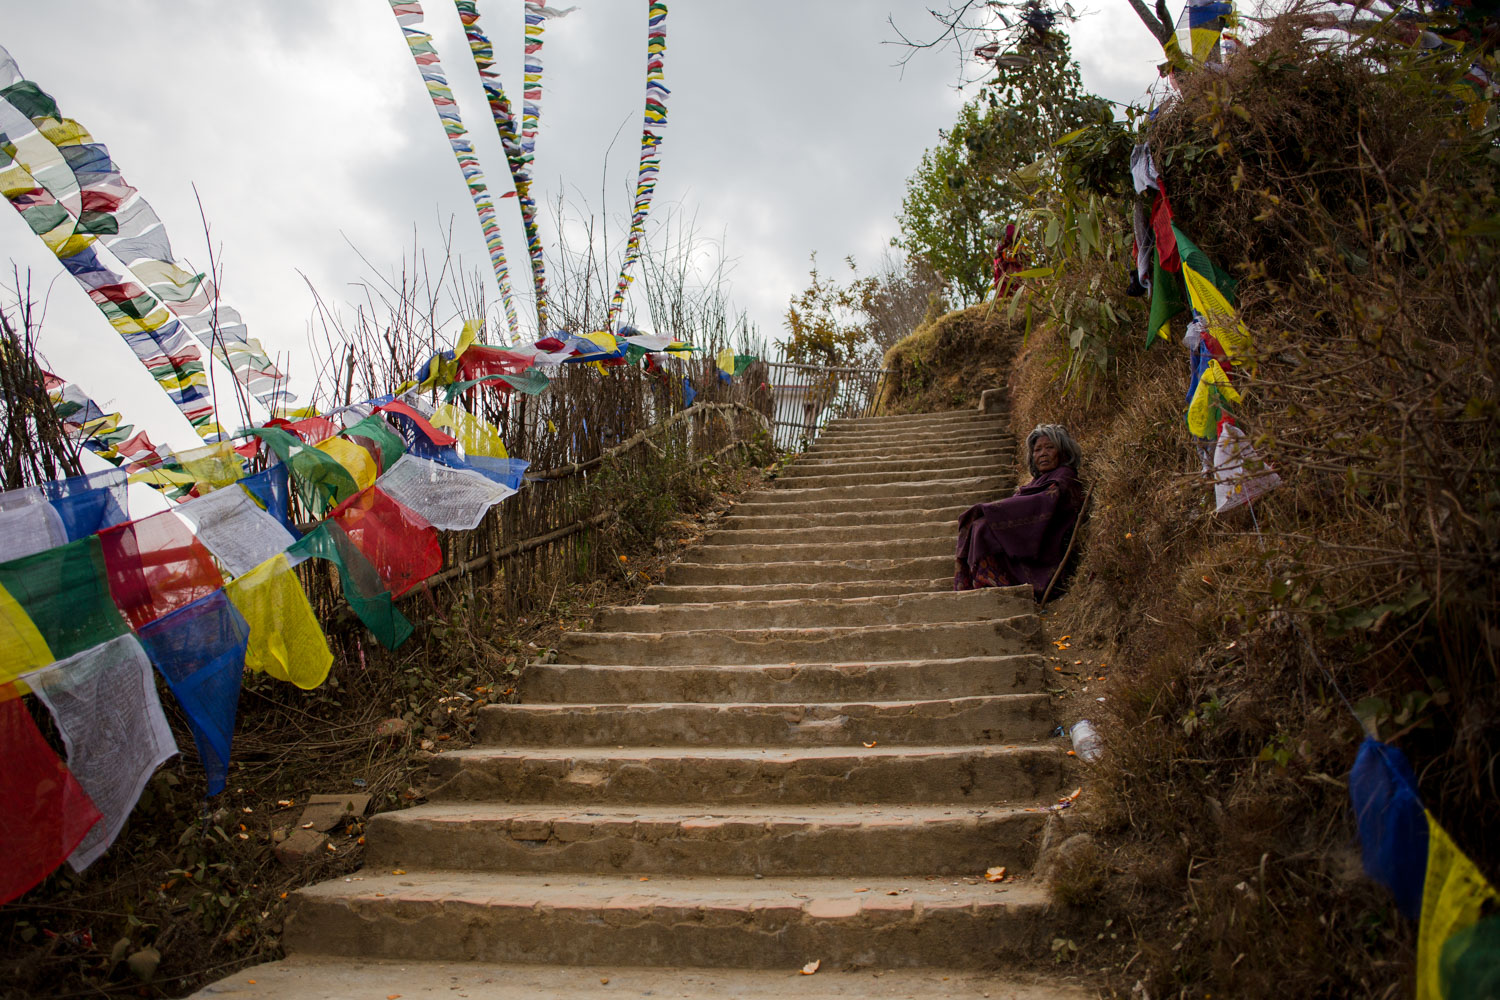 Woman-sitting-on-stairs-at-temple-in-nepal.jpg